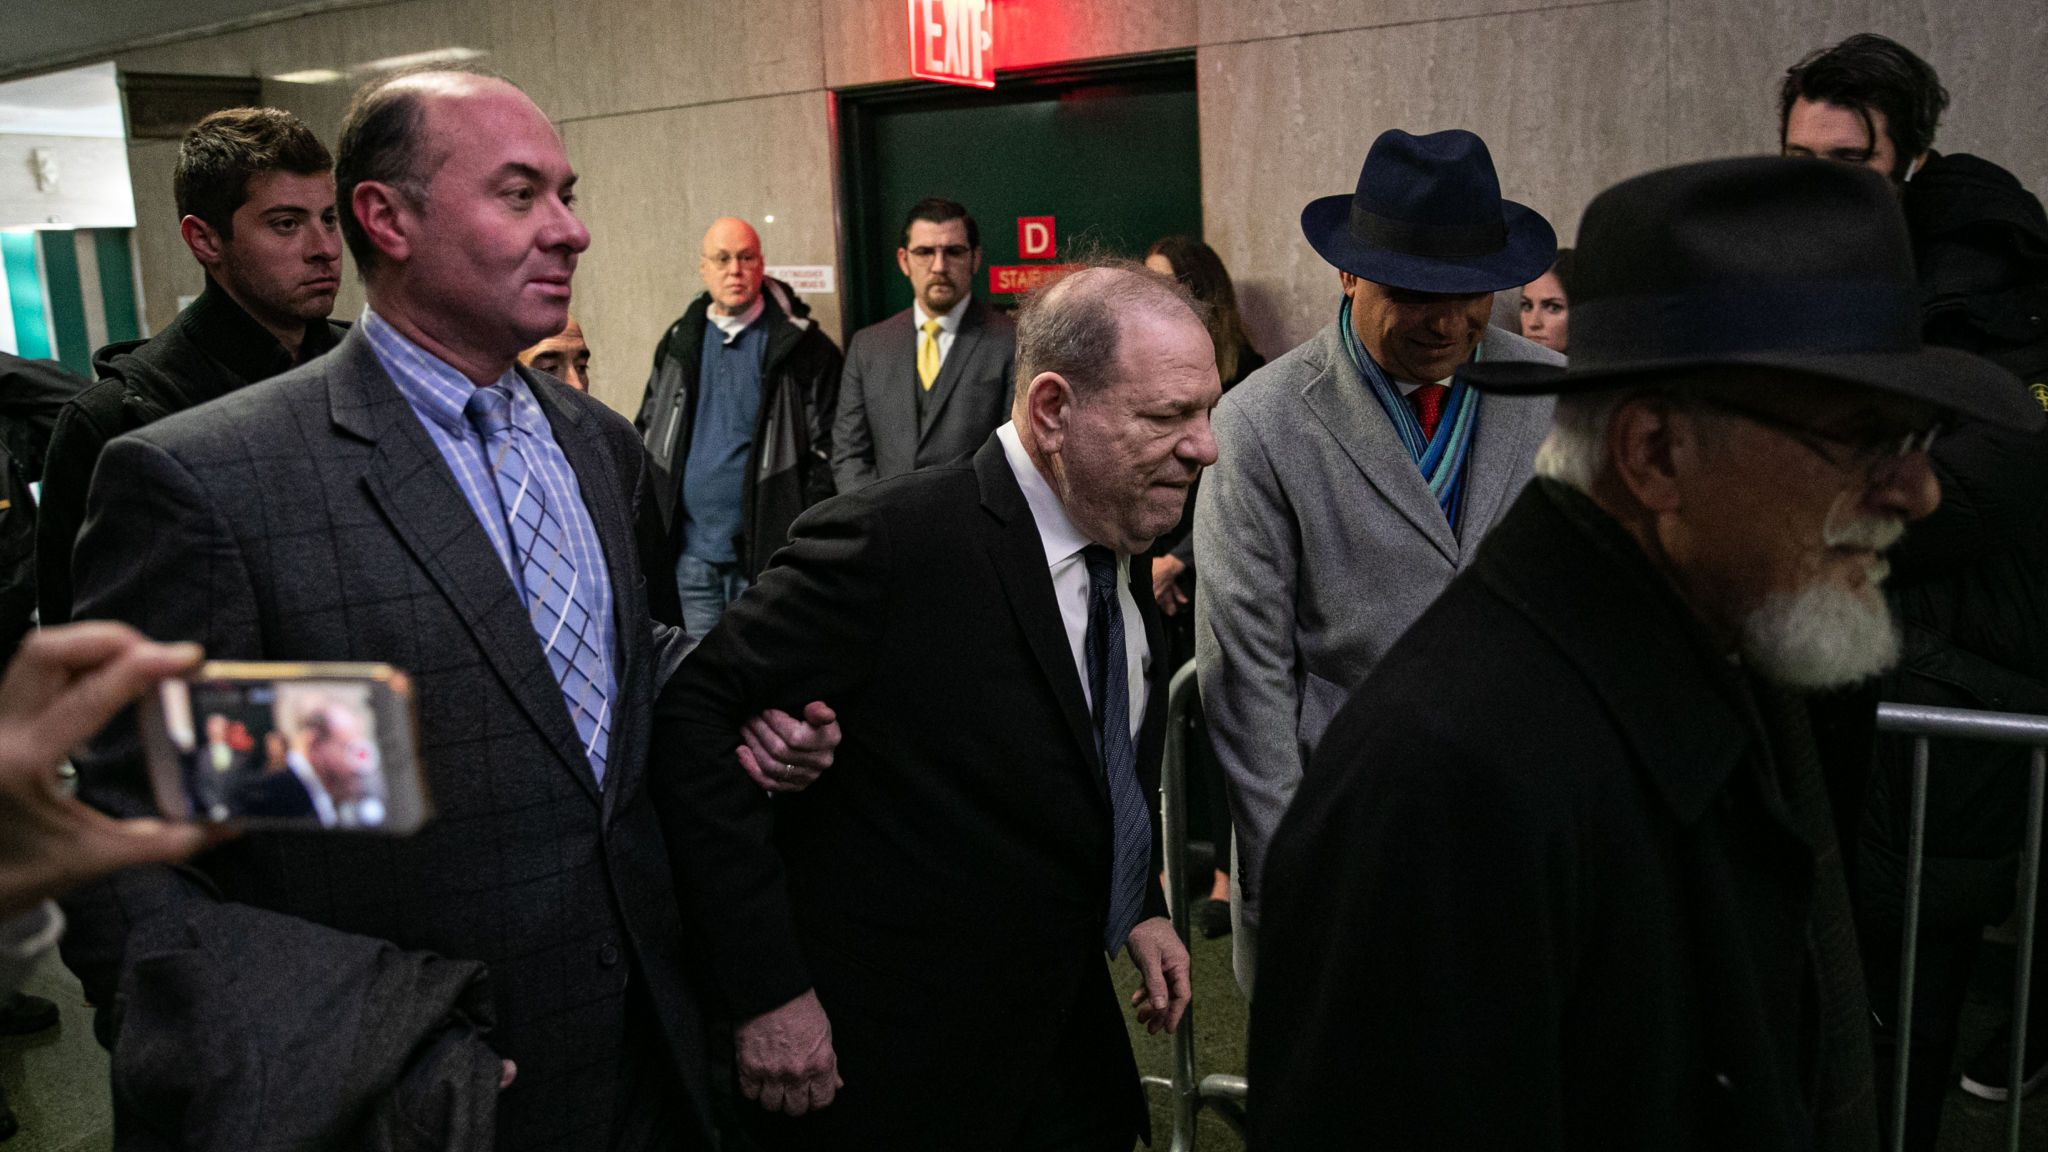 NEW YORK, NY - JANUARY 22: Harvey Weinstein arrives at New York City Criminal Court on January 22, 2020 in New York City. Weinstein, a movie producer whose alleged sexual misconduct helped spark the #MeToo movement, pleaded not-guilty on five counts of rape and sexual assault against two unnamed women and faces a possible life sentence in prison. (Photo by Jeenah Moon/Getty Images)